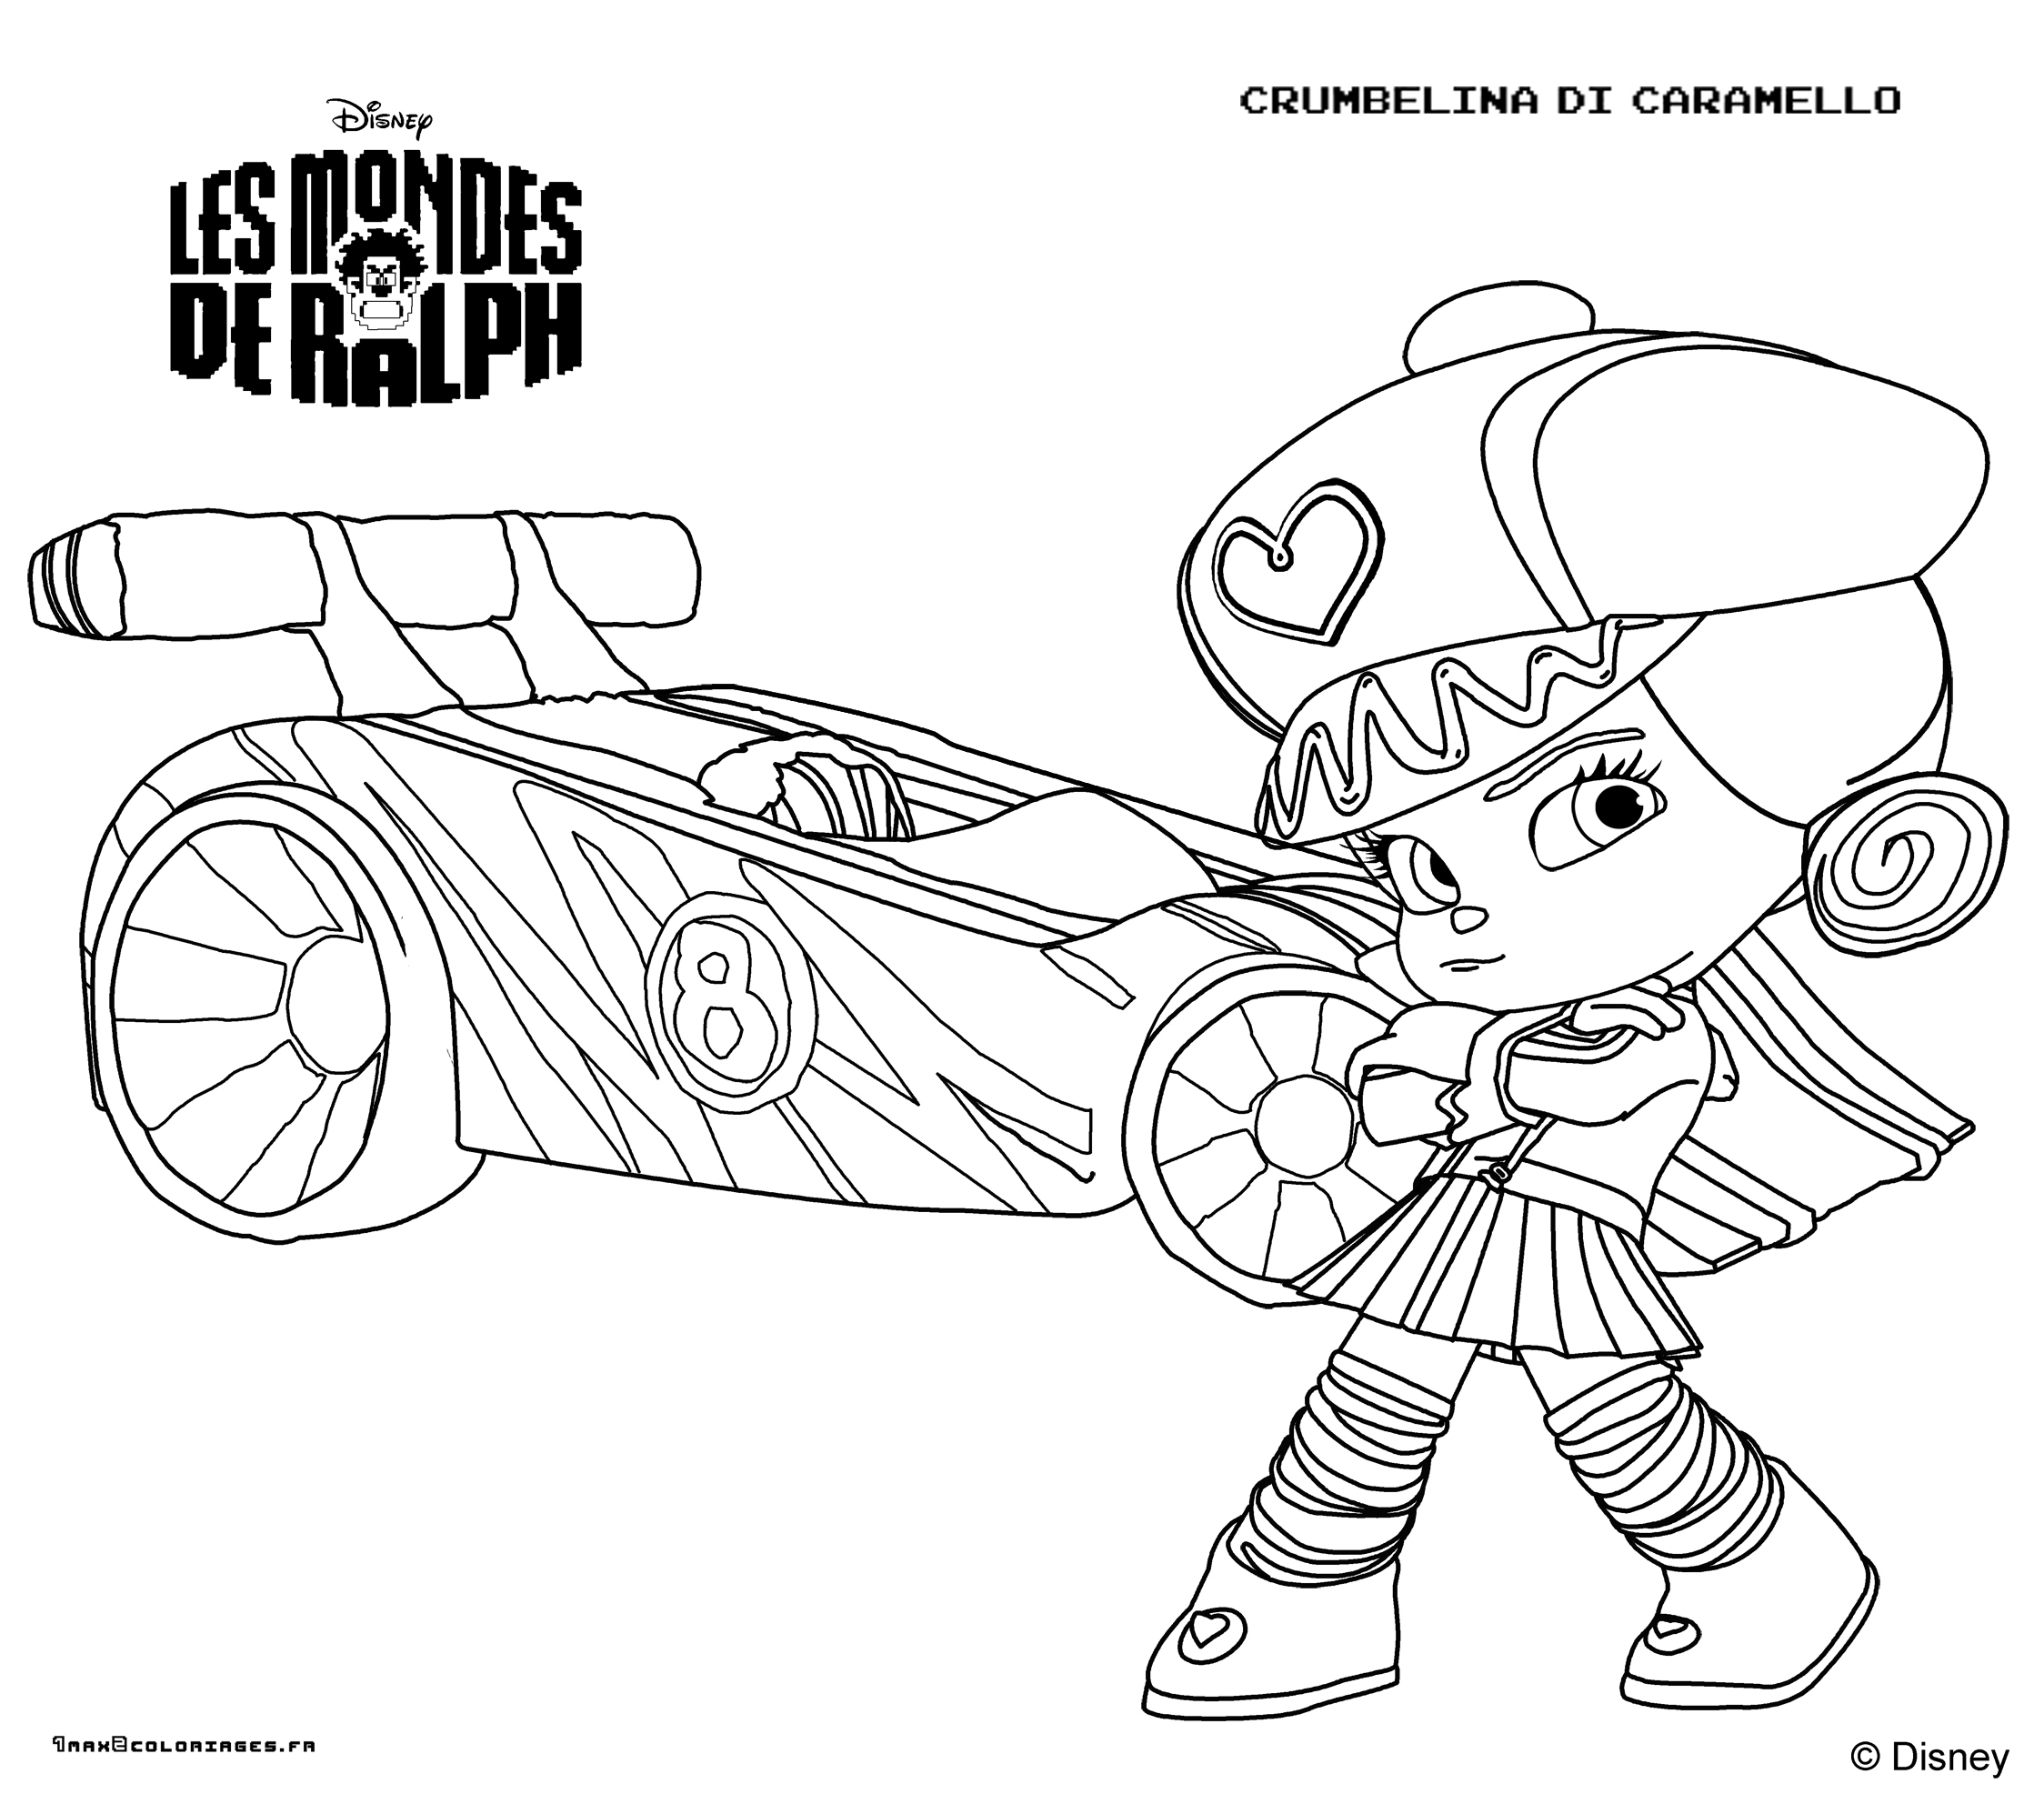 2248x1984 Ralph And Vanellope Coloring Pages For Kids Elegant Wreck It Ralph